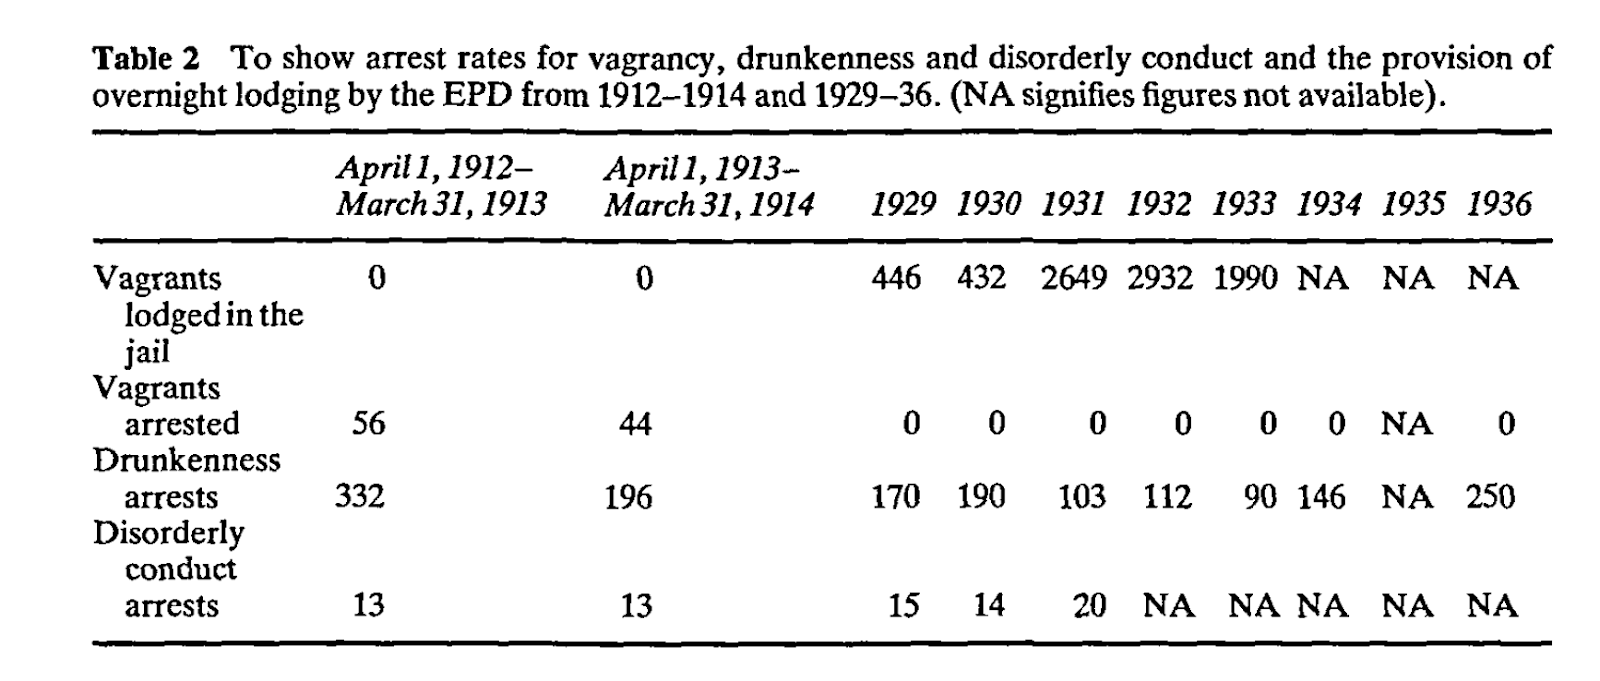 Table of figures showing the rates of incarceration among vagrants in lane county between 1929 and 1936, comparing them to the years 1912 and 1914. Between 1912 and 1914, exactly 100 people were arrested for vagrancy, but none were lodged in the jail. Between 1929 and 1933, there were no arrests for vagrancy, but there were hundreds, sometimes thousands of vagrants kept in the jail. In 1929, there were 446, in 1930, there were 432, in 1931, there were 2649, in 1932, there were 2932, in 1933 there were 1990 arrests.